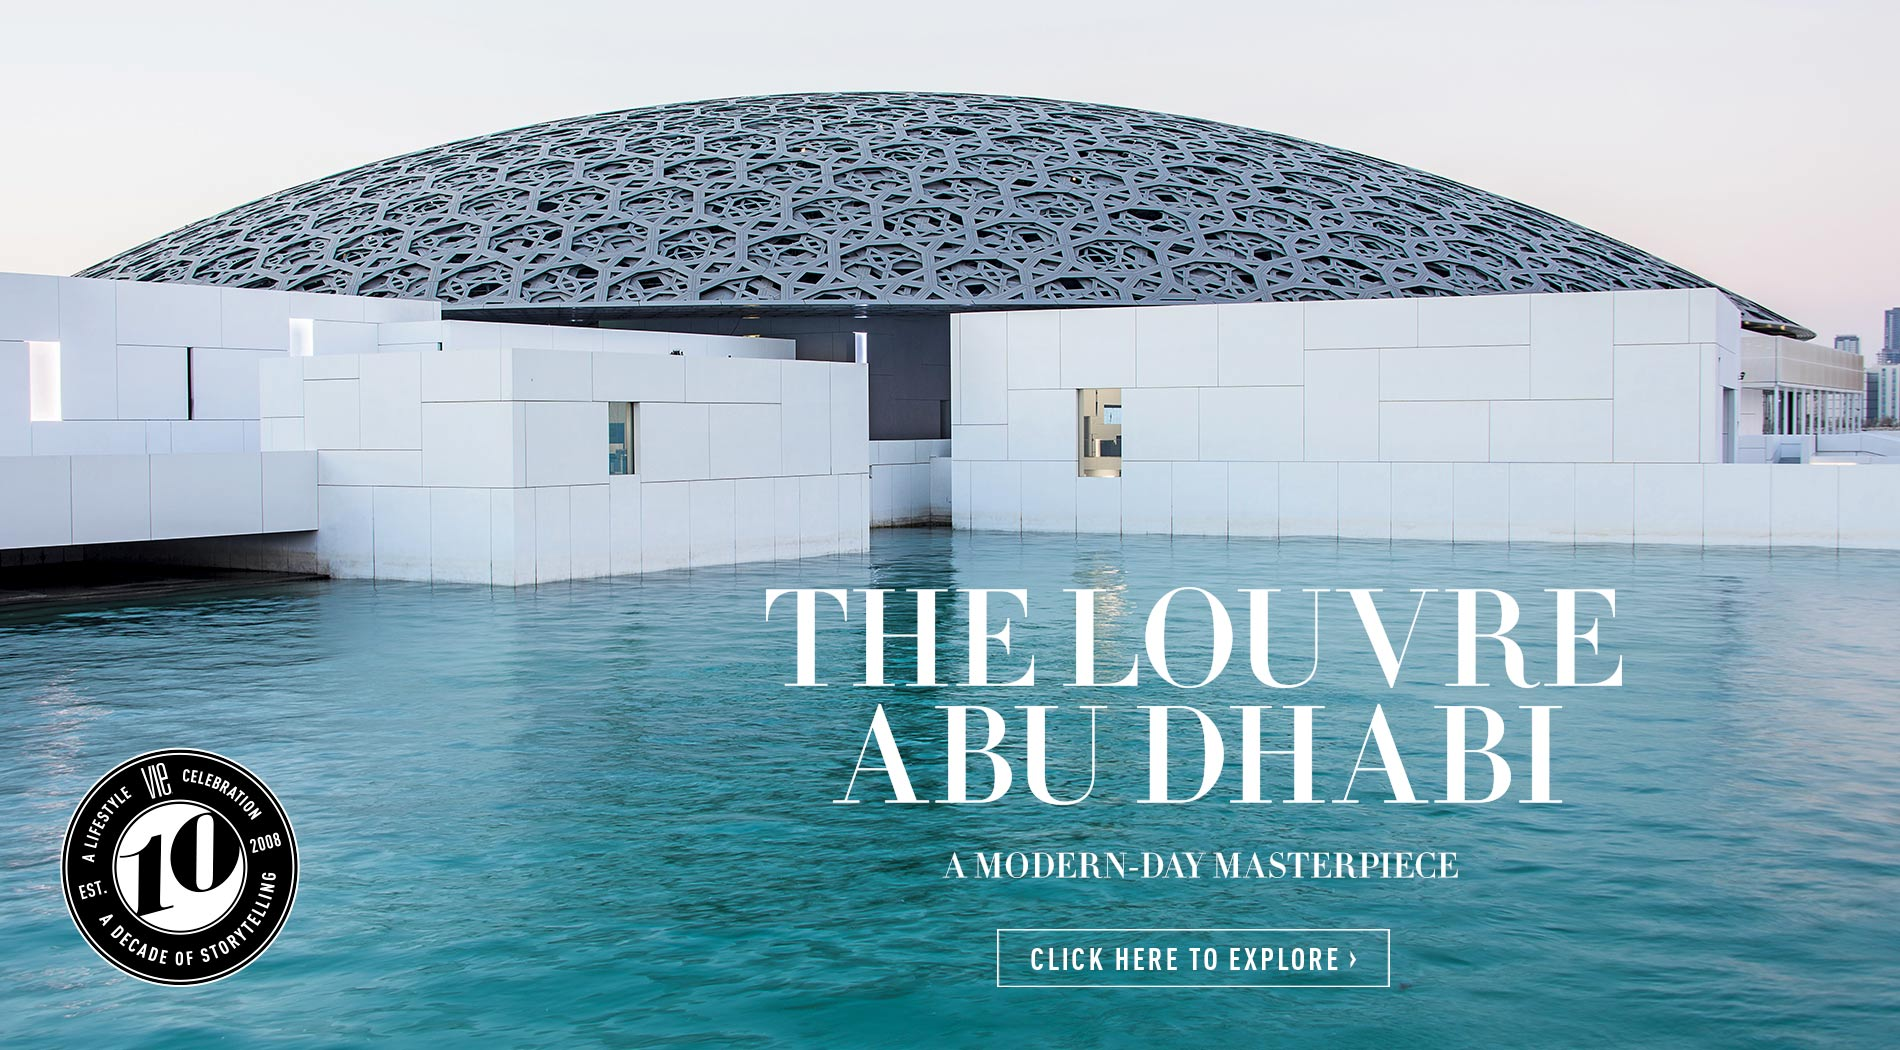 VIE Magazine, February 2018, Destination Travel Issue, The Louvre at Abu Dhabi